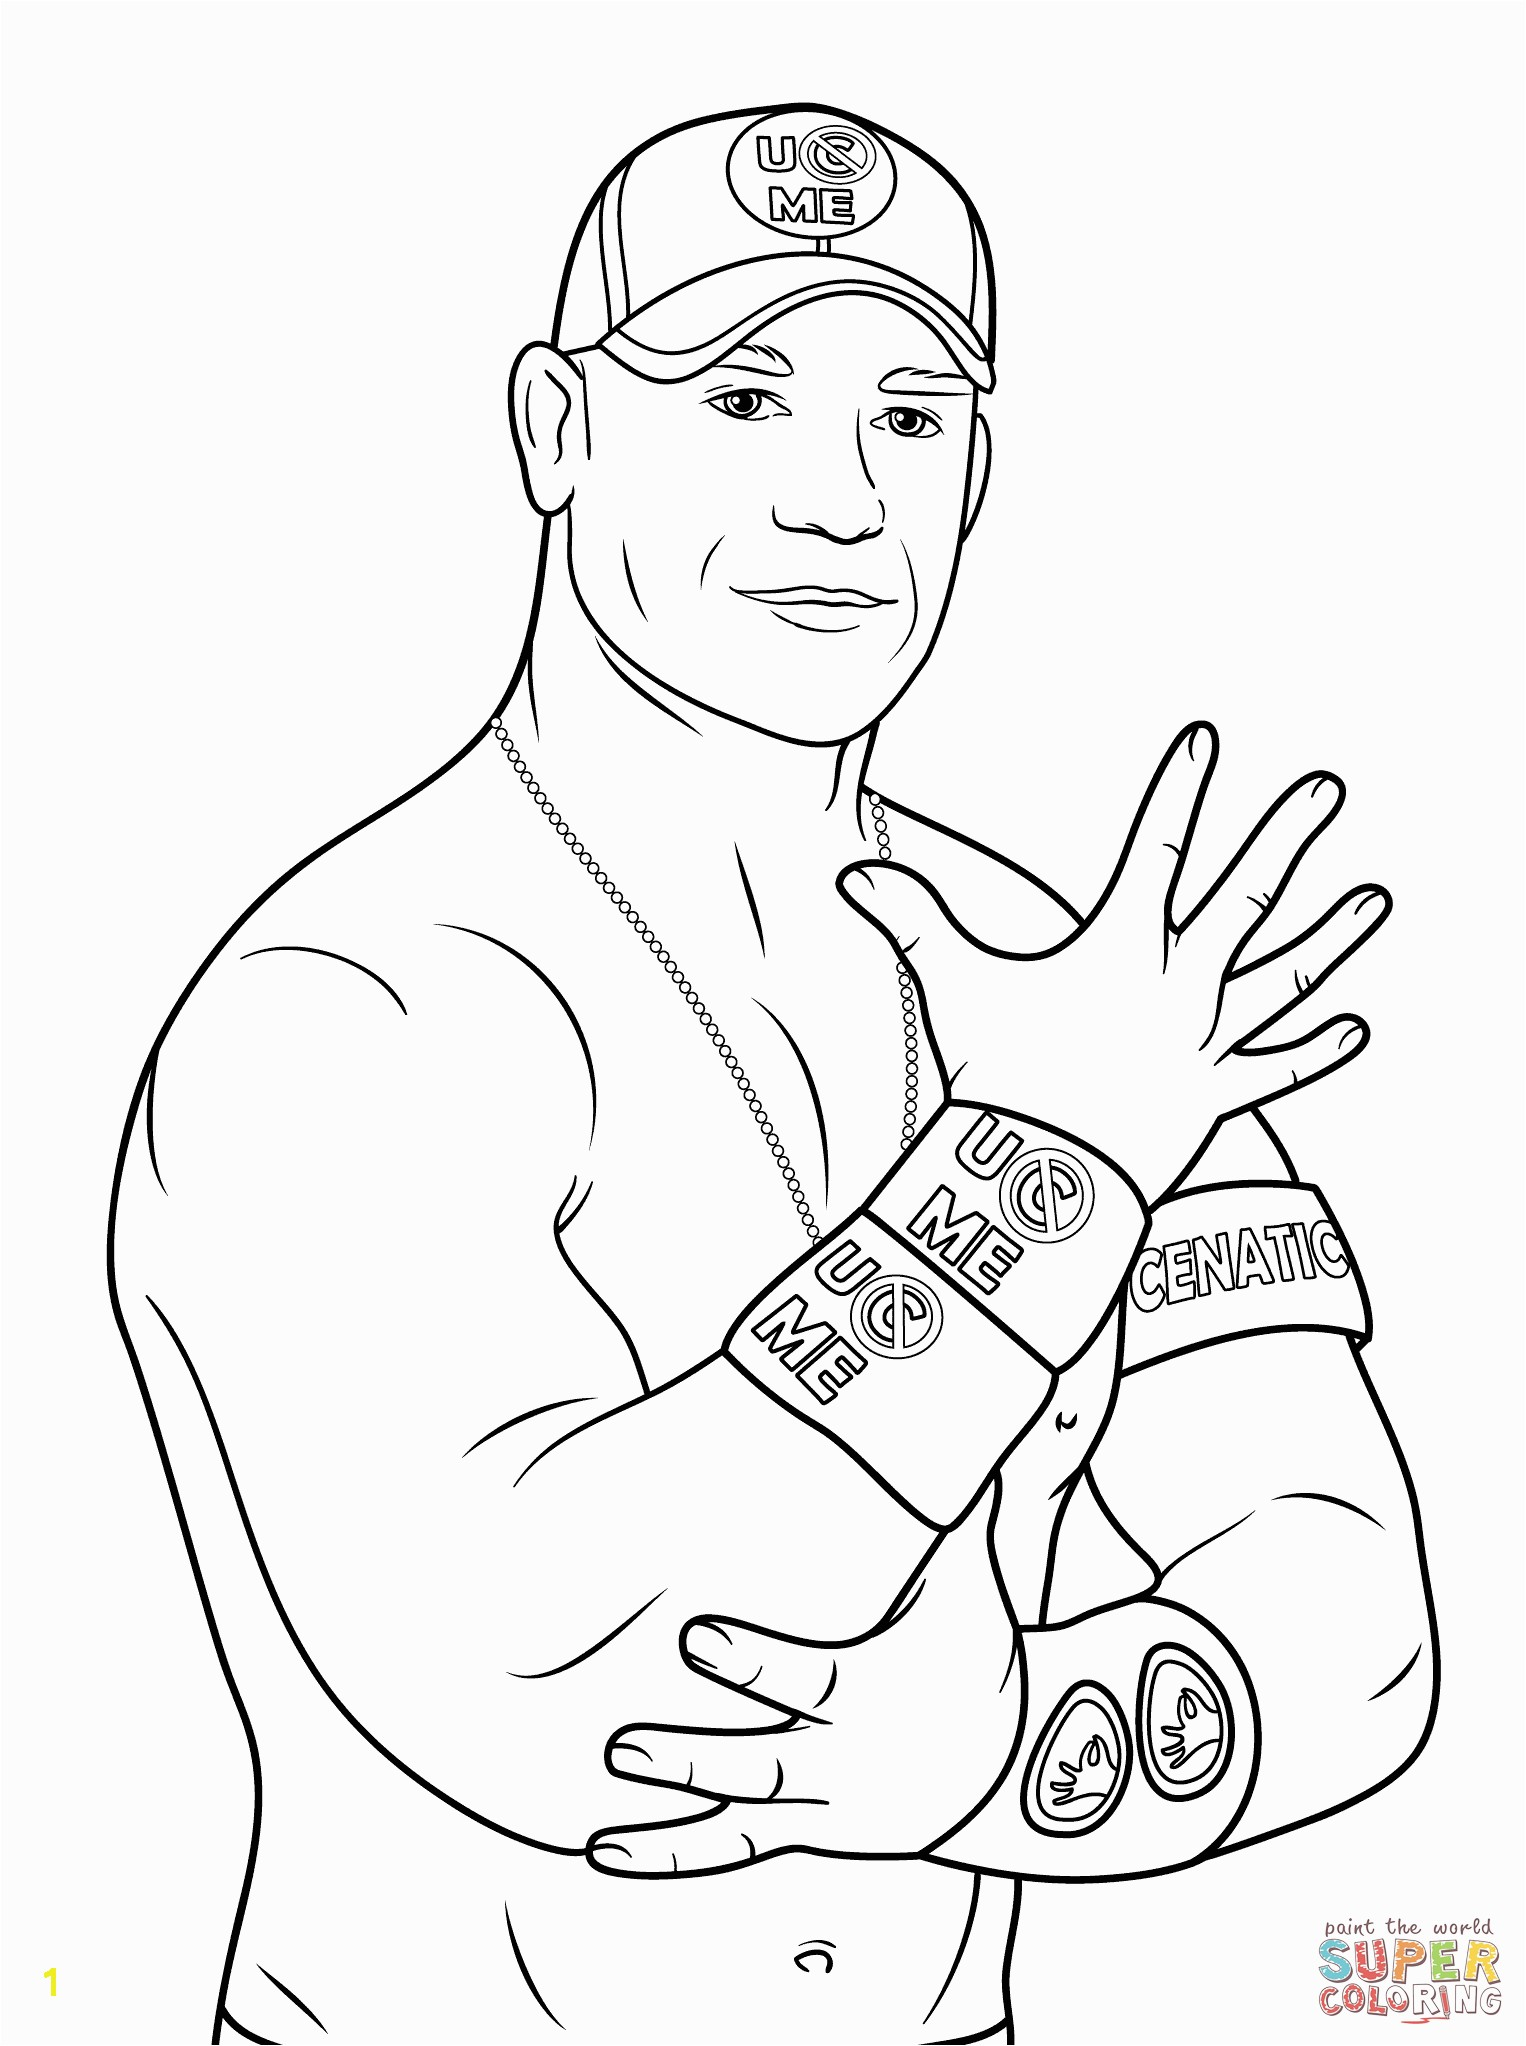 the John Cena coloring pages